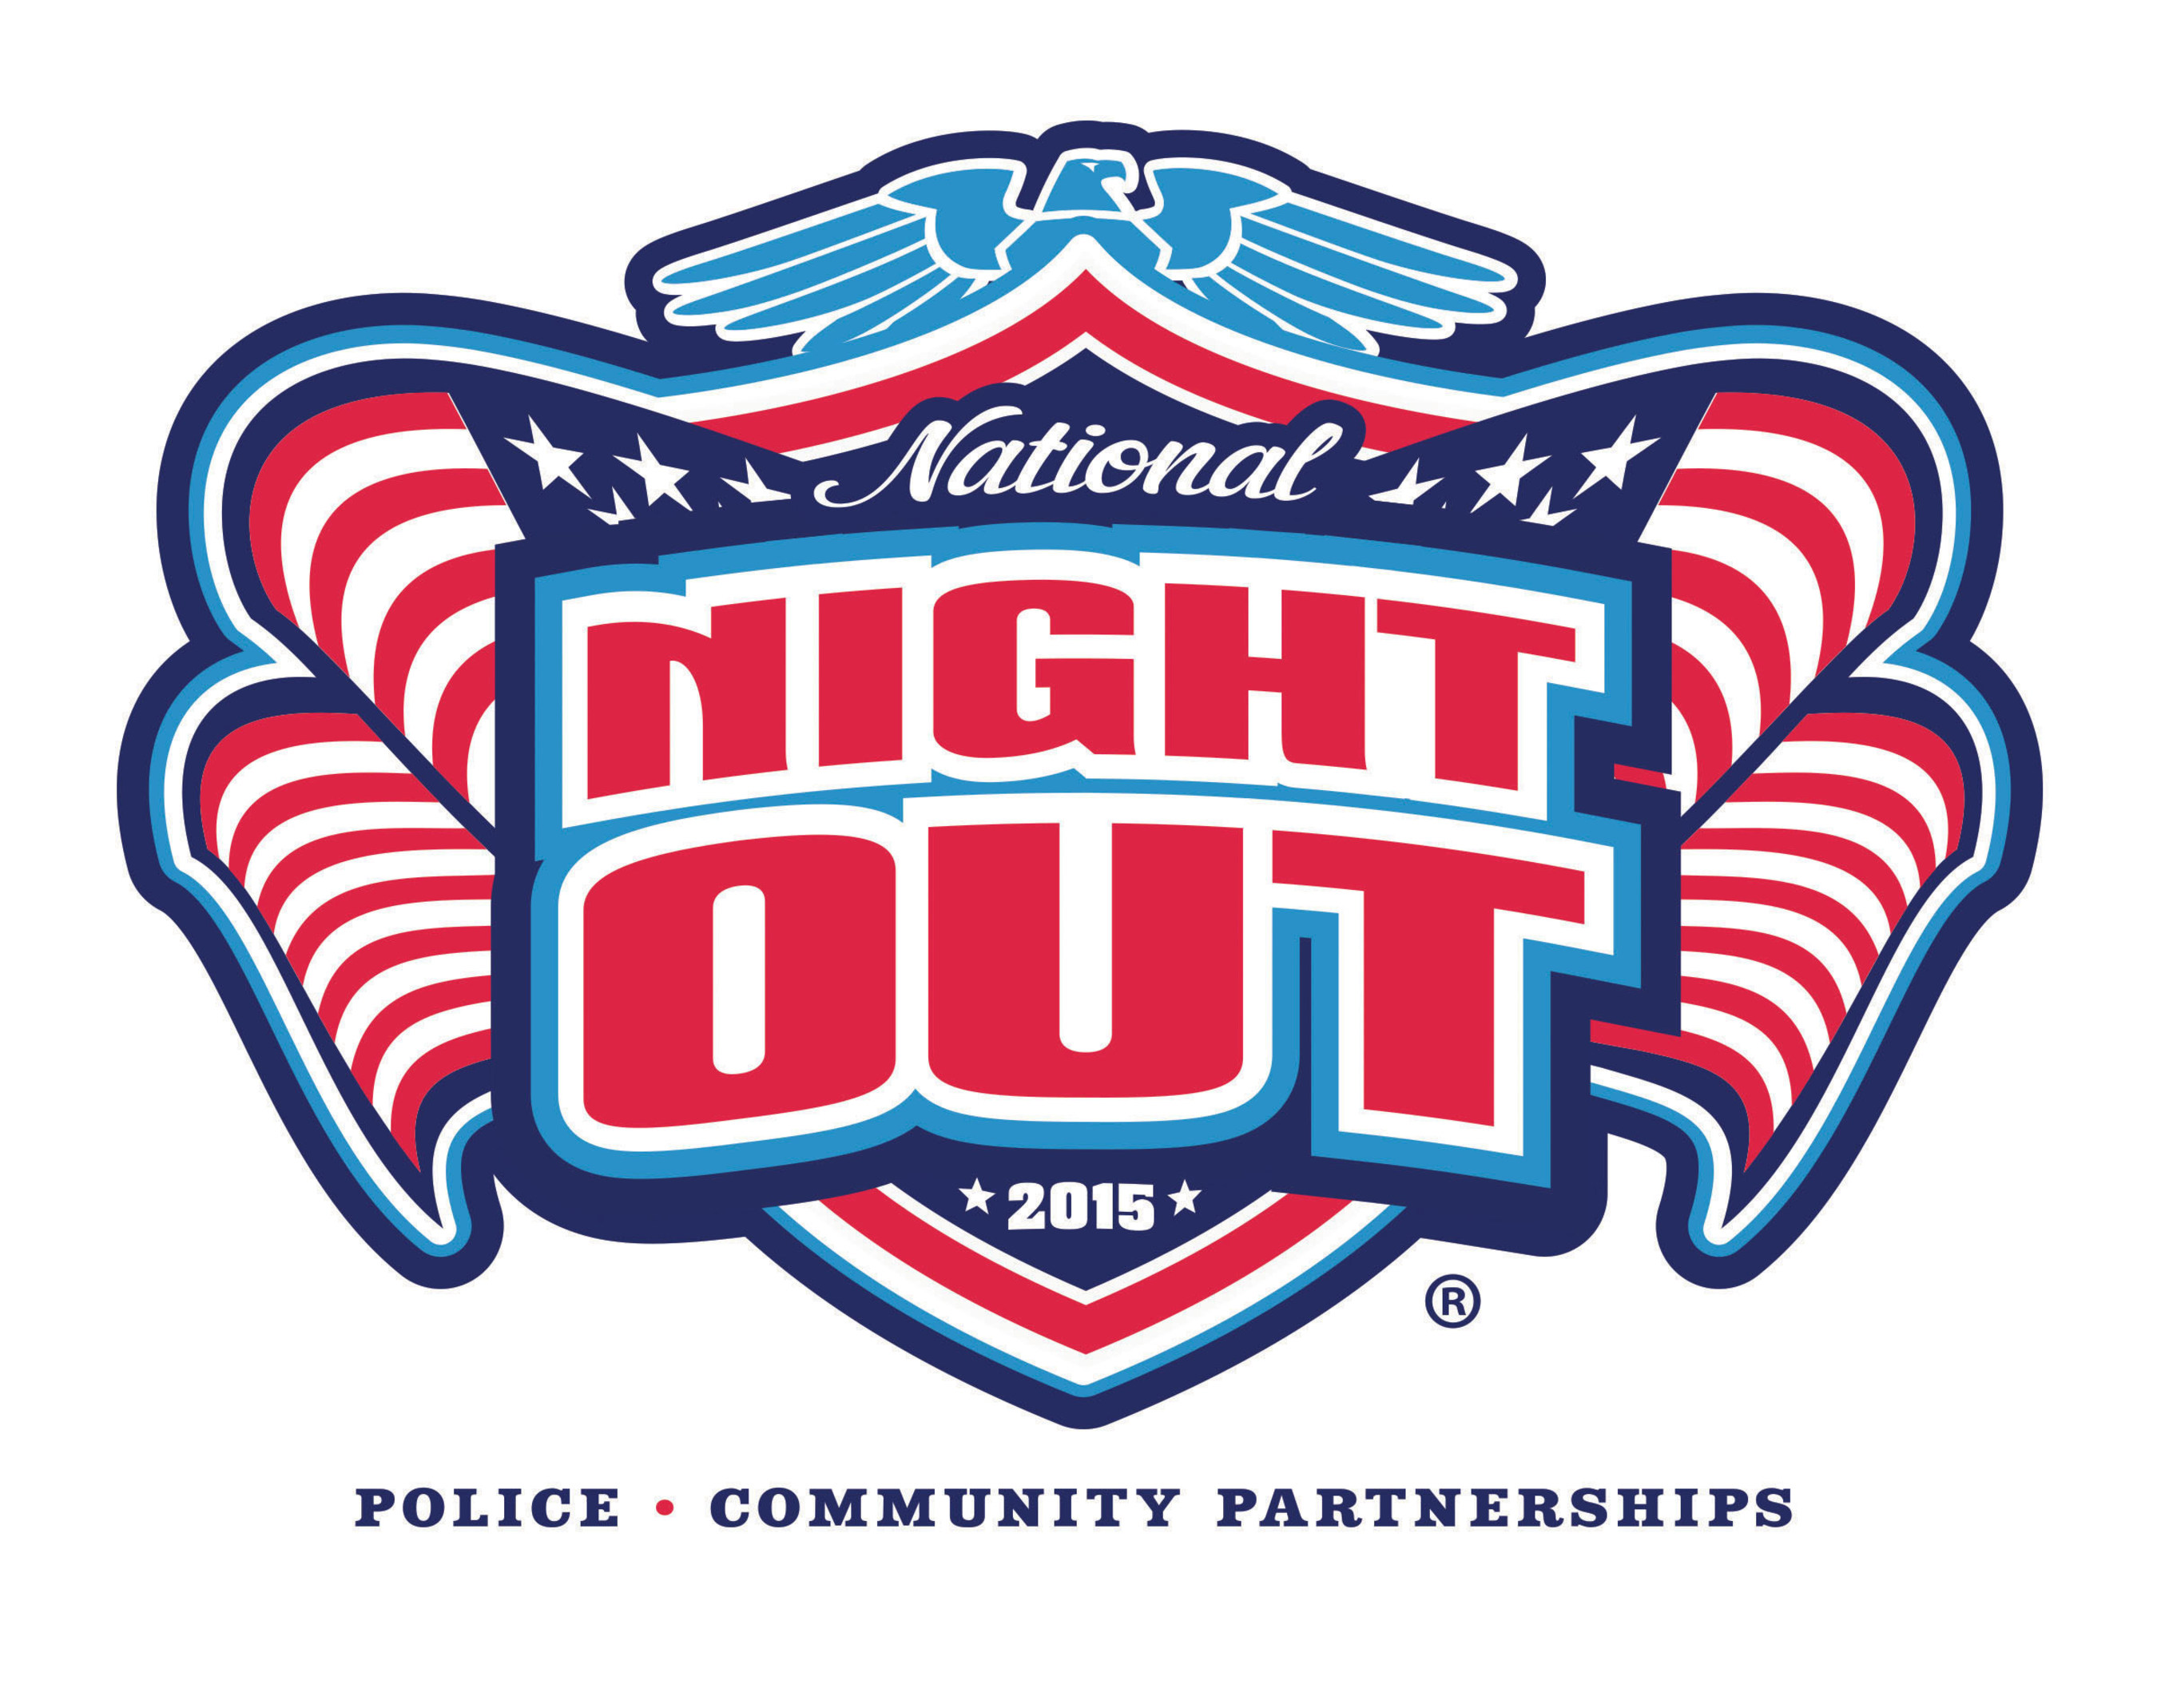 National Night Out 2015 logo